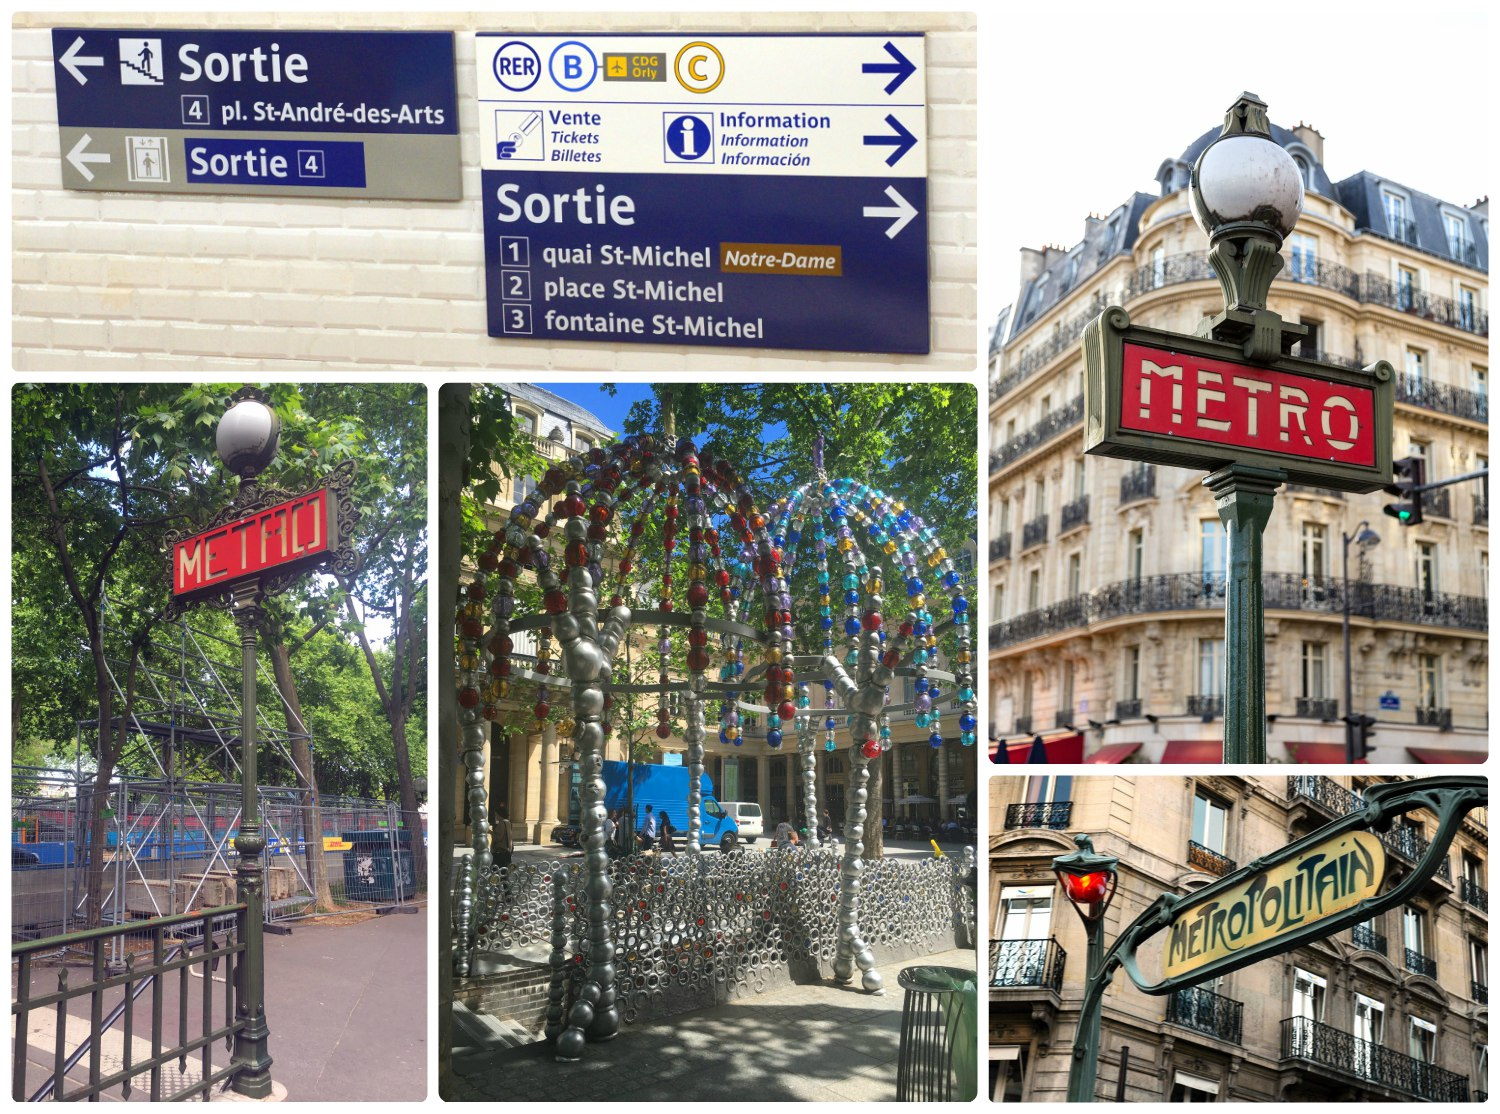 Top Left: Find the exit from the metro station by looking for the signs that say 'Sortie' (French for 'Exit'). The rest of the images are signs and entrances for metro stations across Paris.